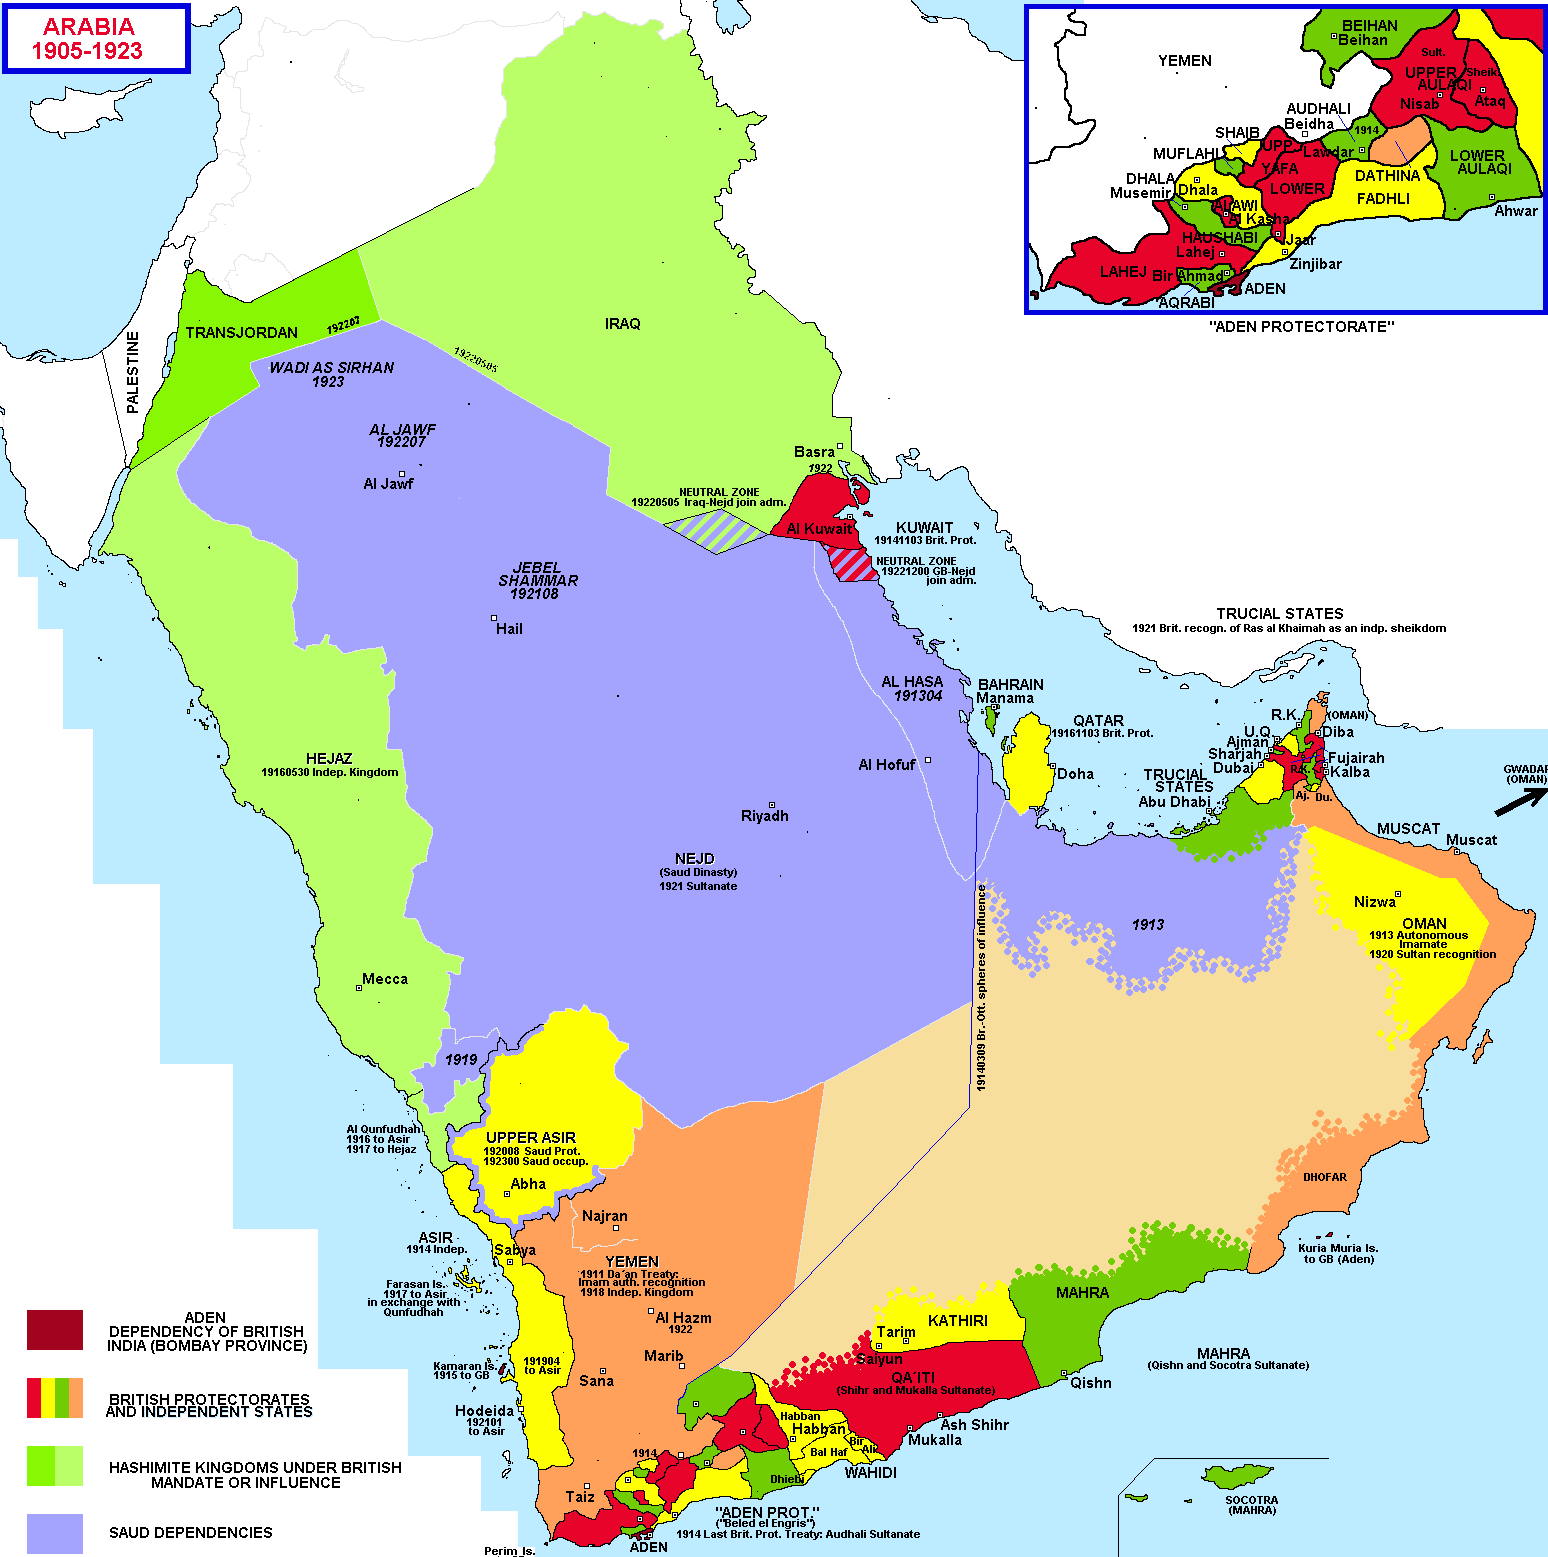 Political map of the arabian peninsula 1905 1923 modern middle political map of the arabian peninsula 1905 1923 gumiabroncs Images